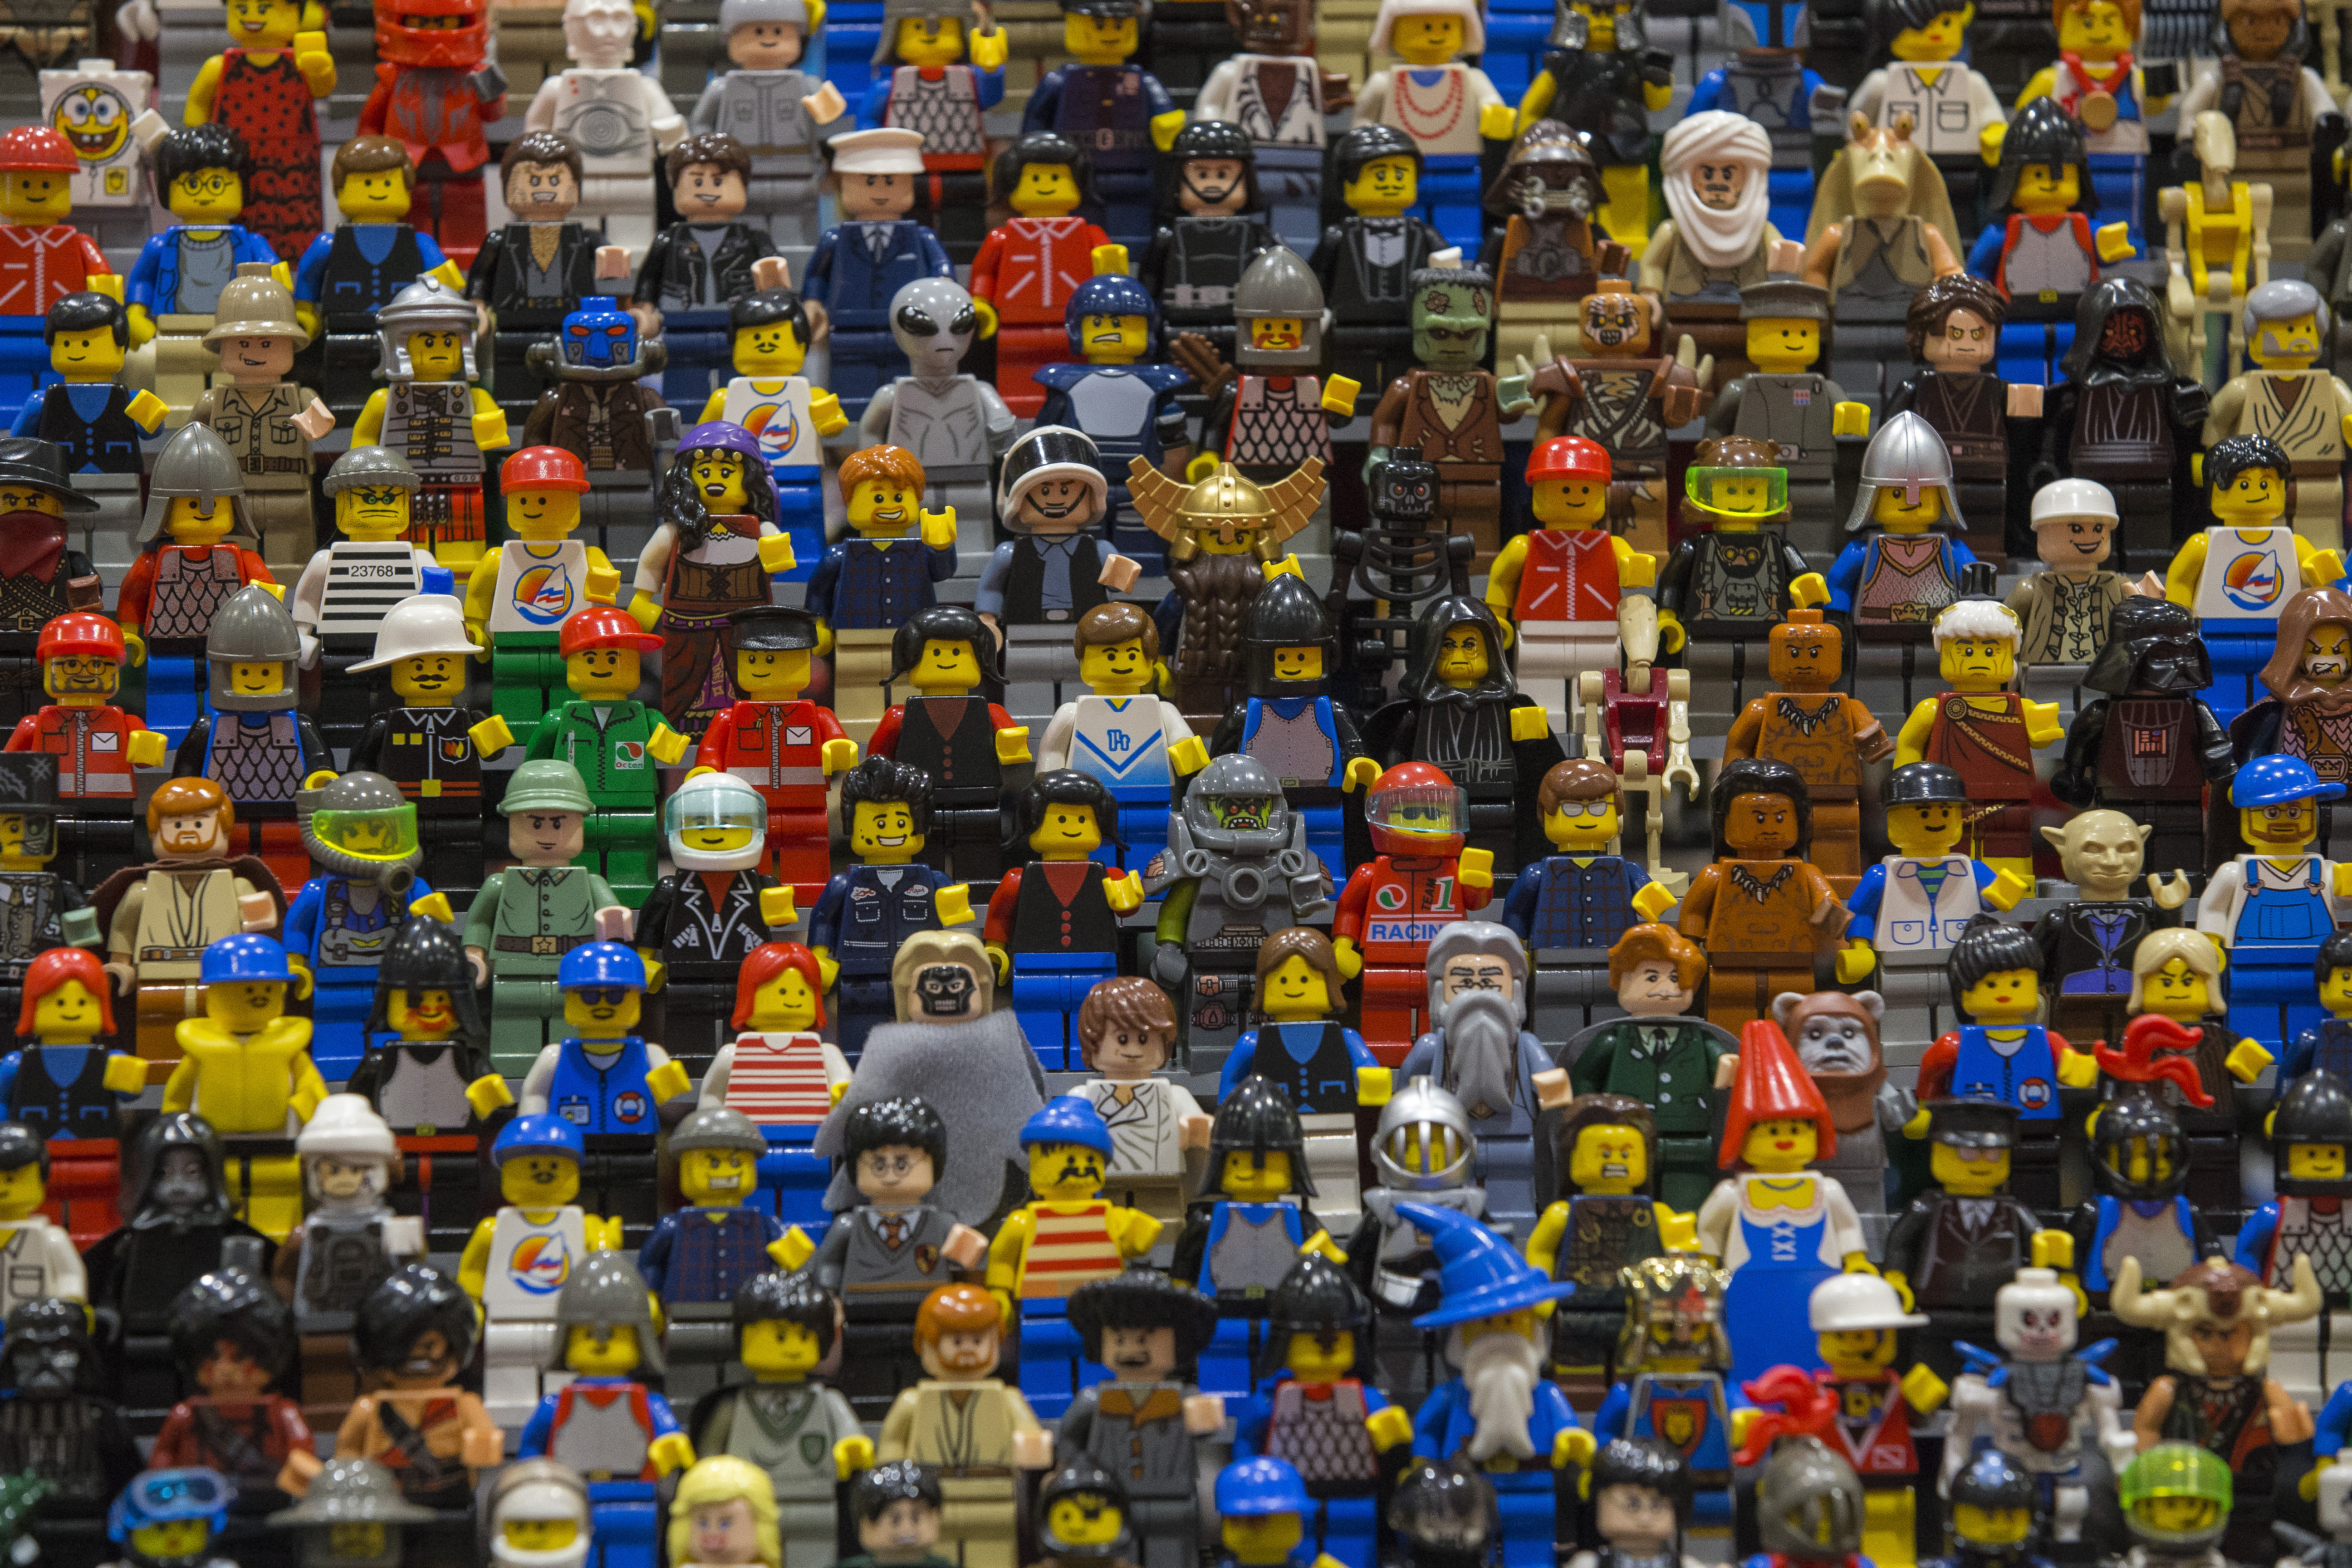 Lego figures are displayed on the opening day of BRICK 2014 at the Excel Centre on November 27, 2014 in London.